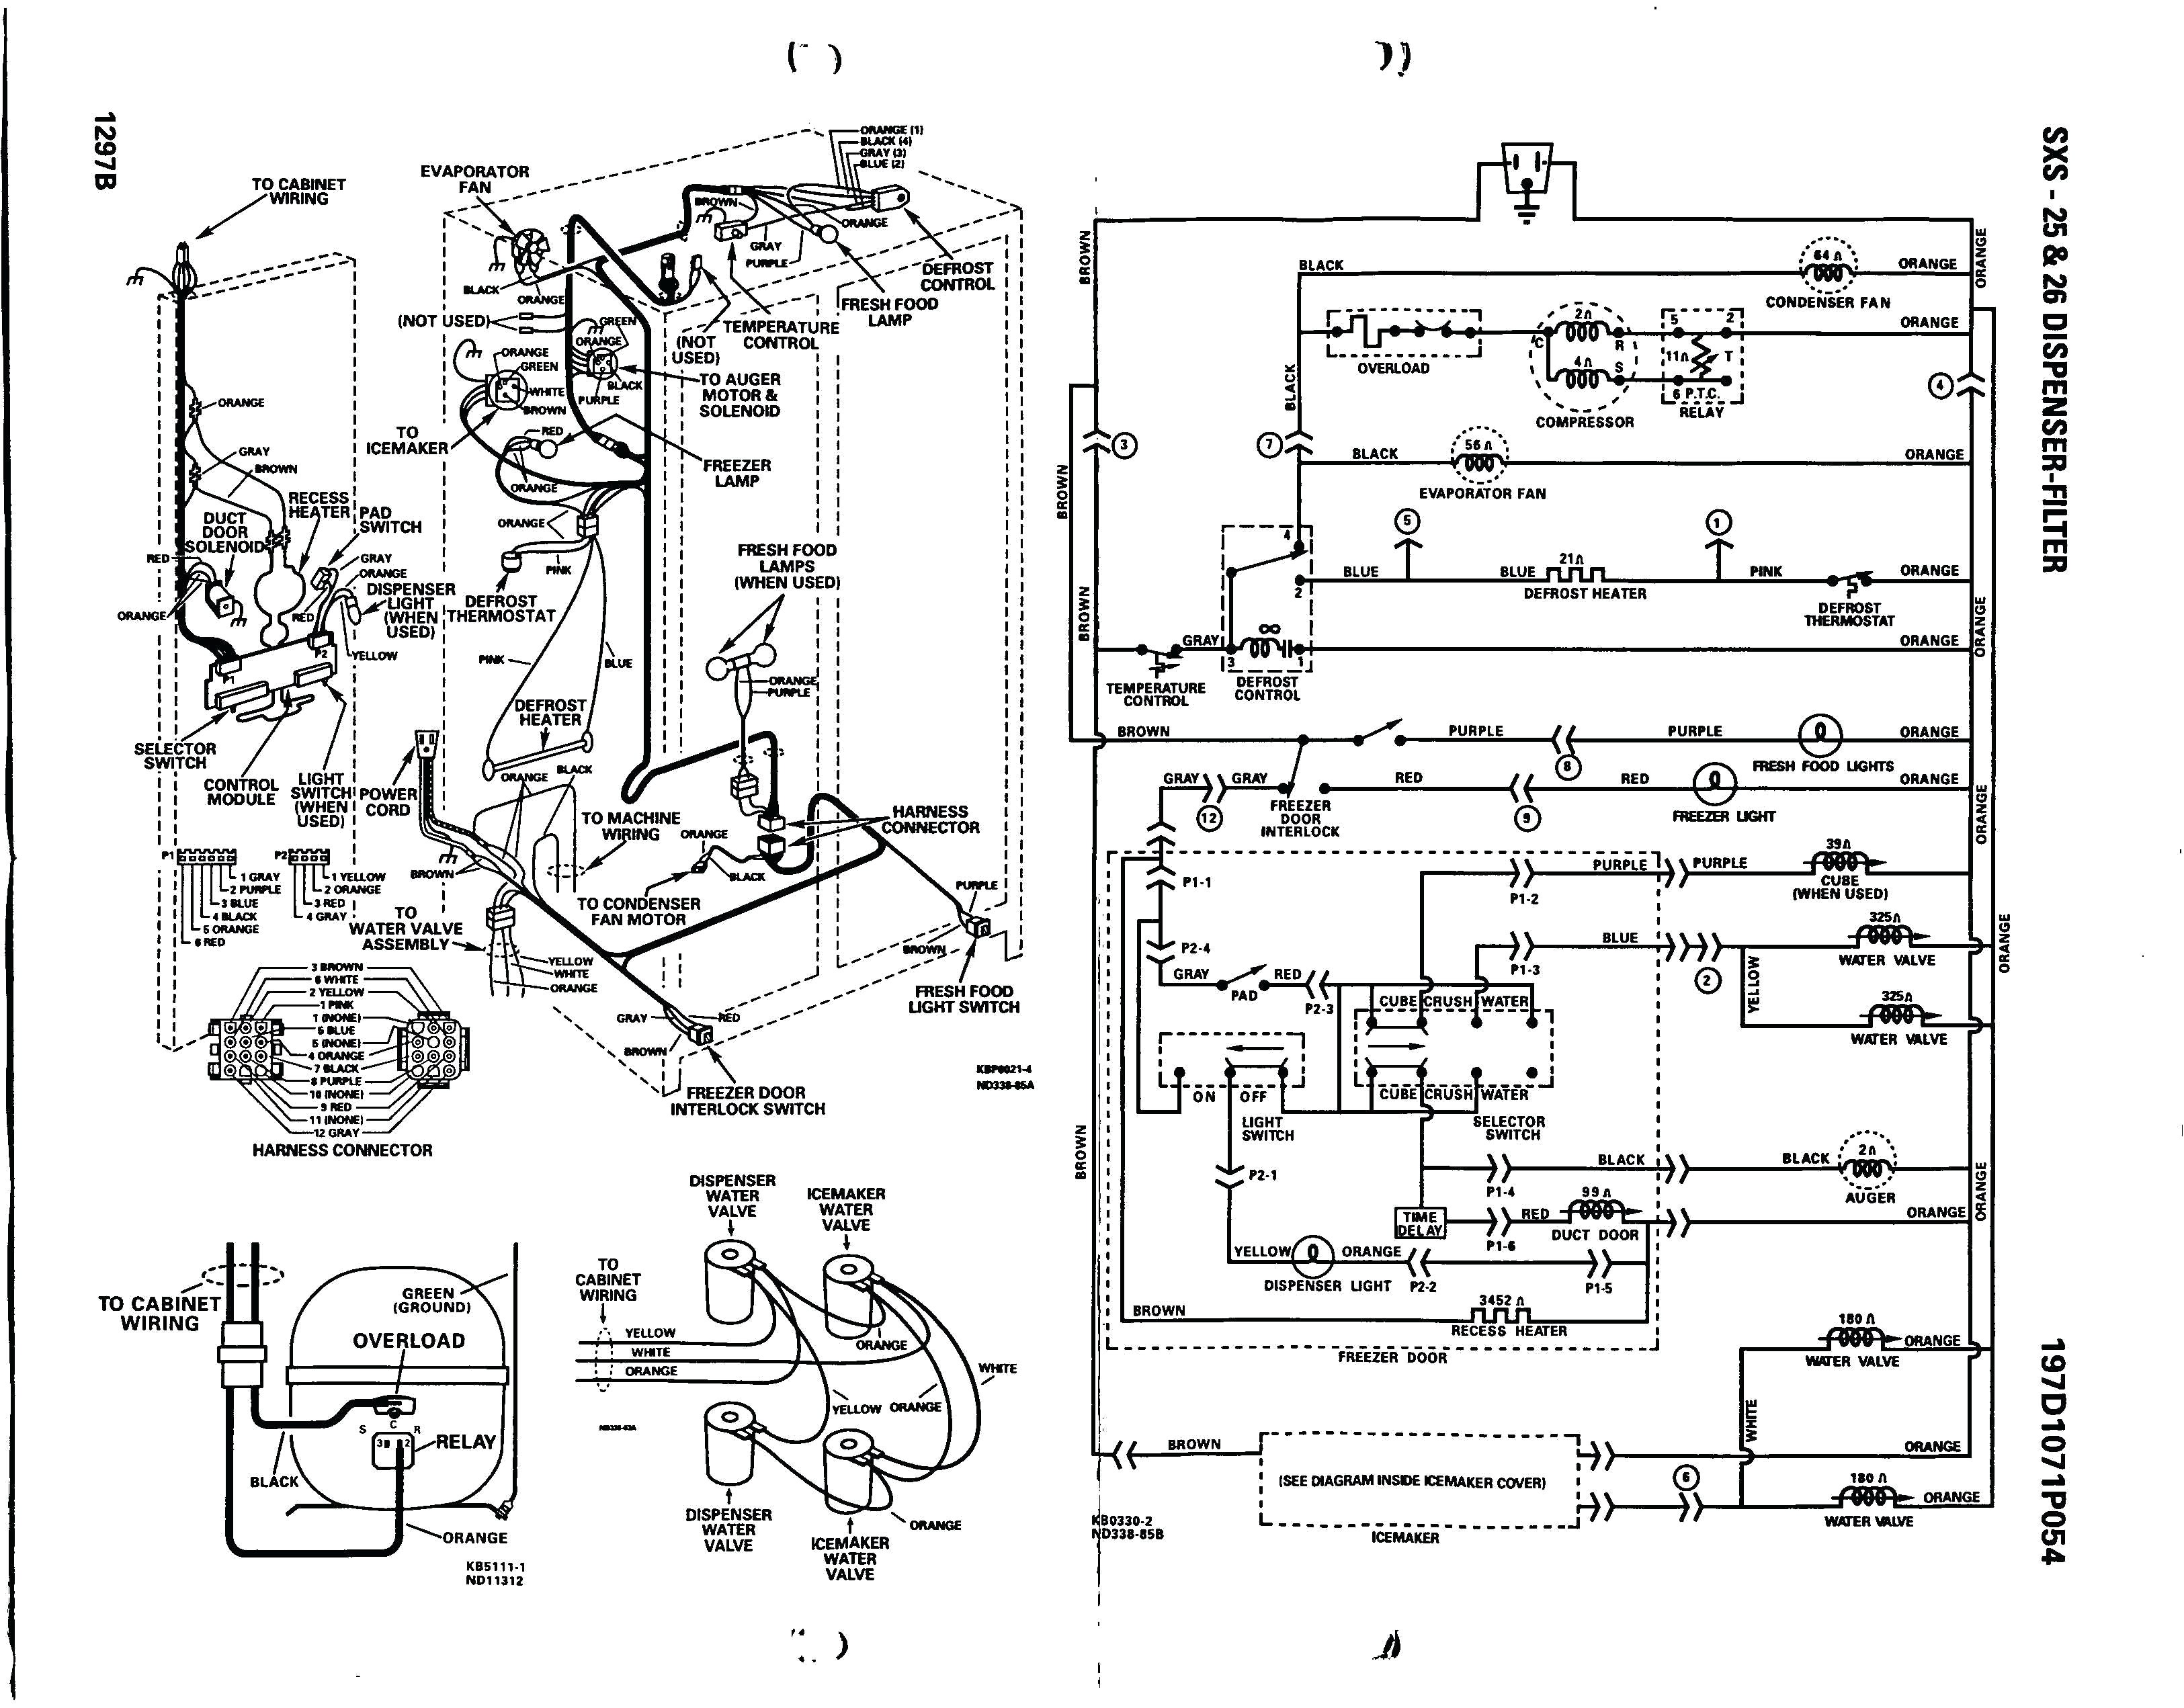 Marathon Electric Motors Wiring Diagram Wiring Diagram Image